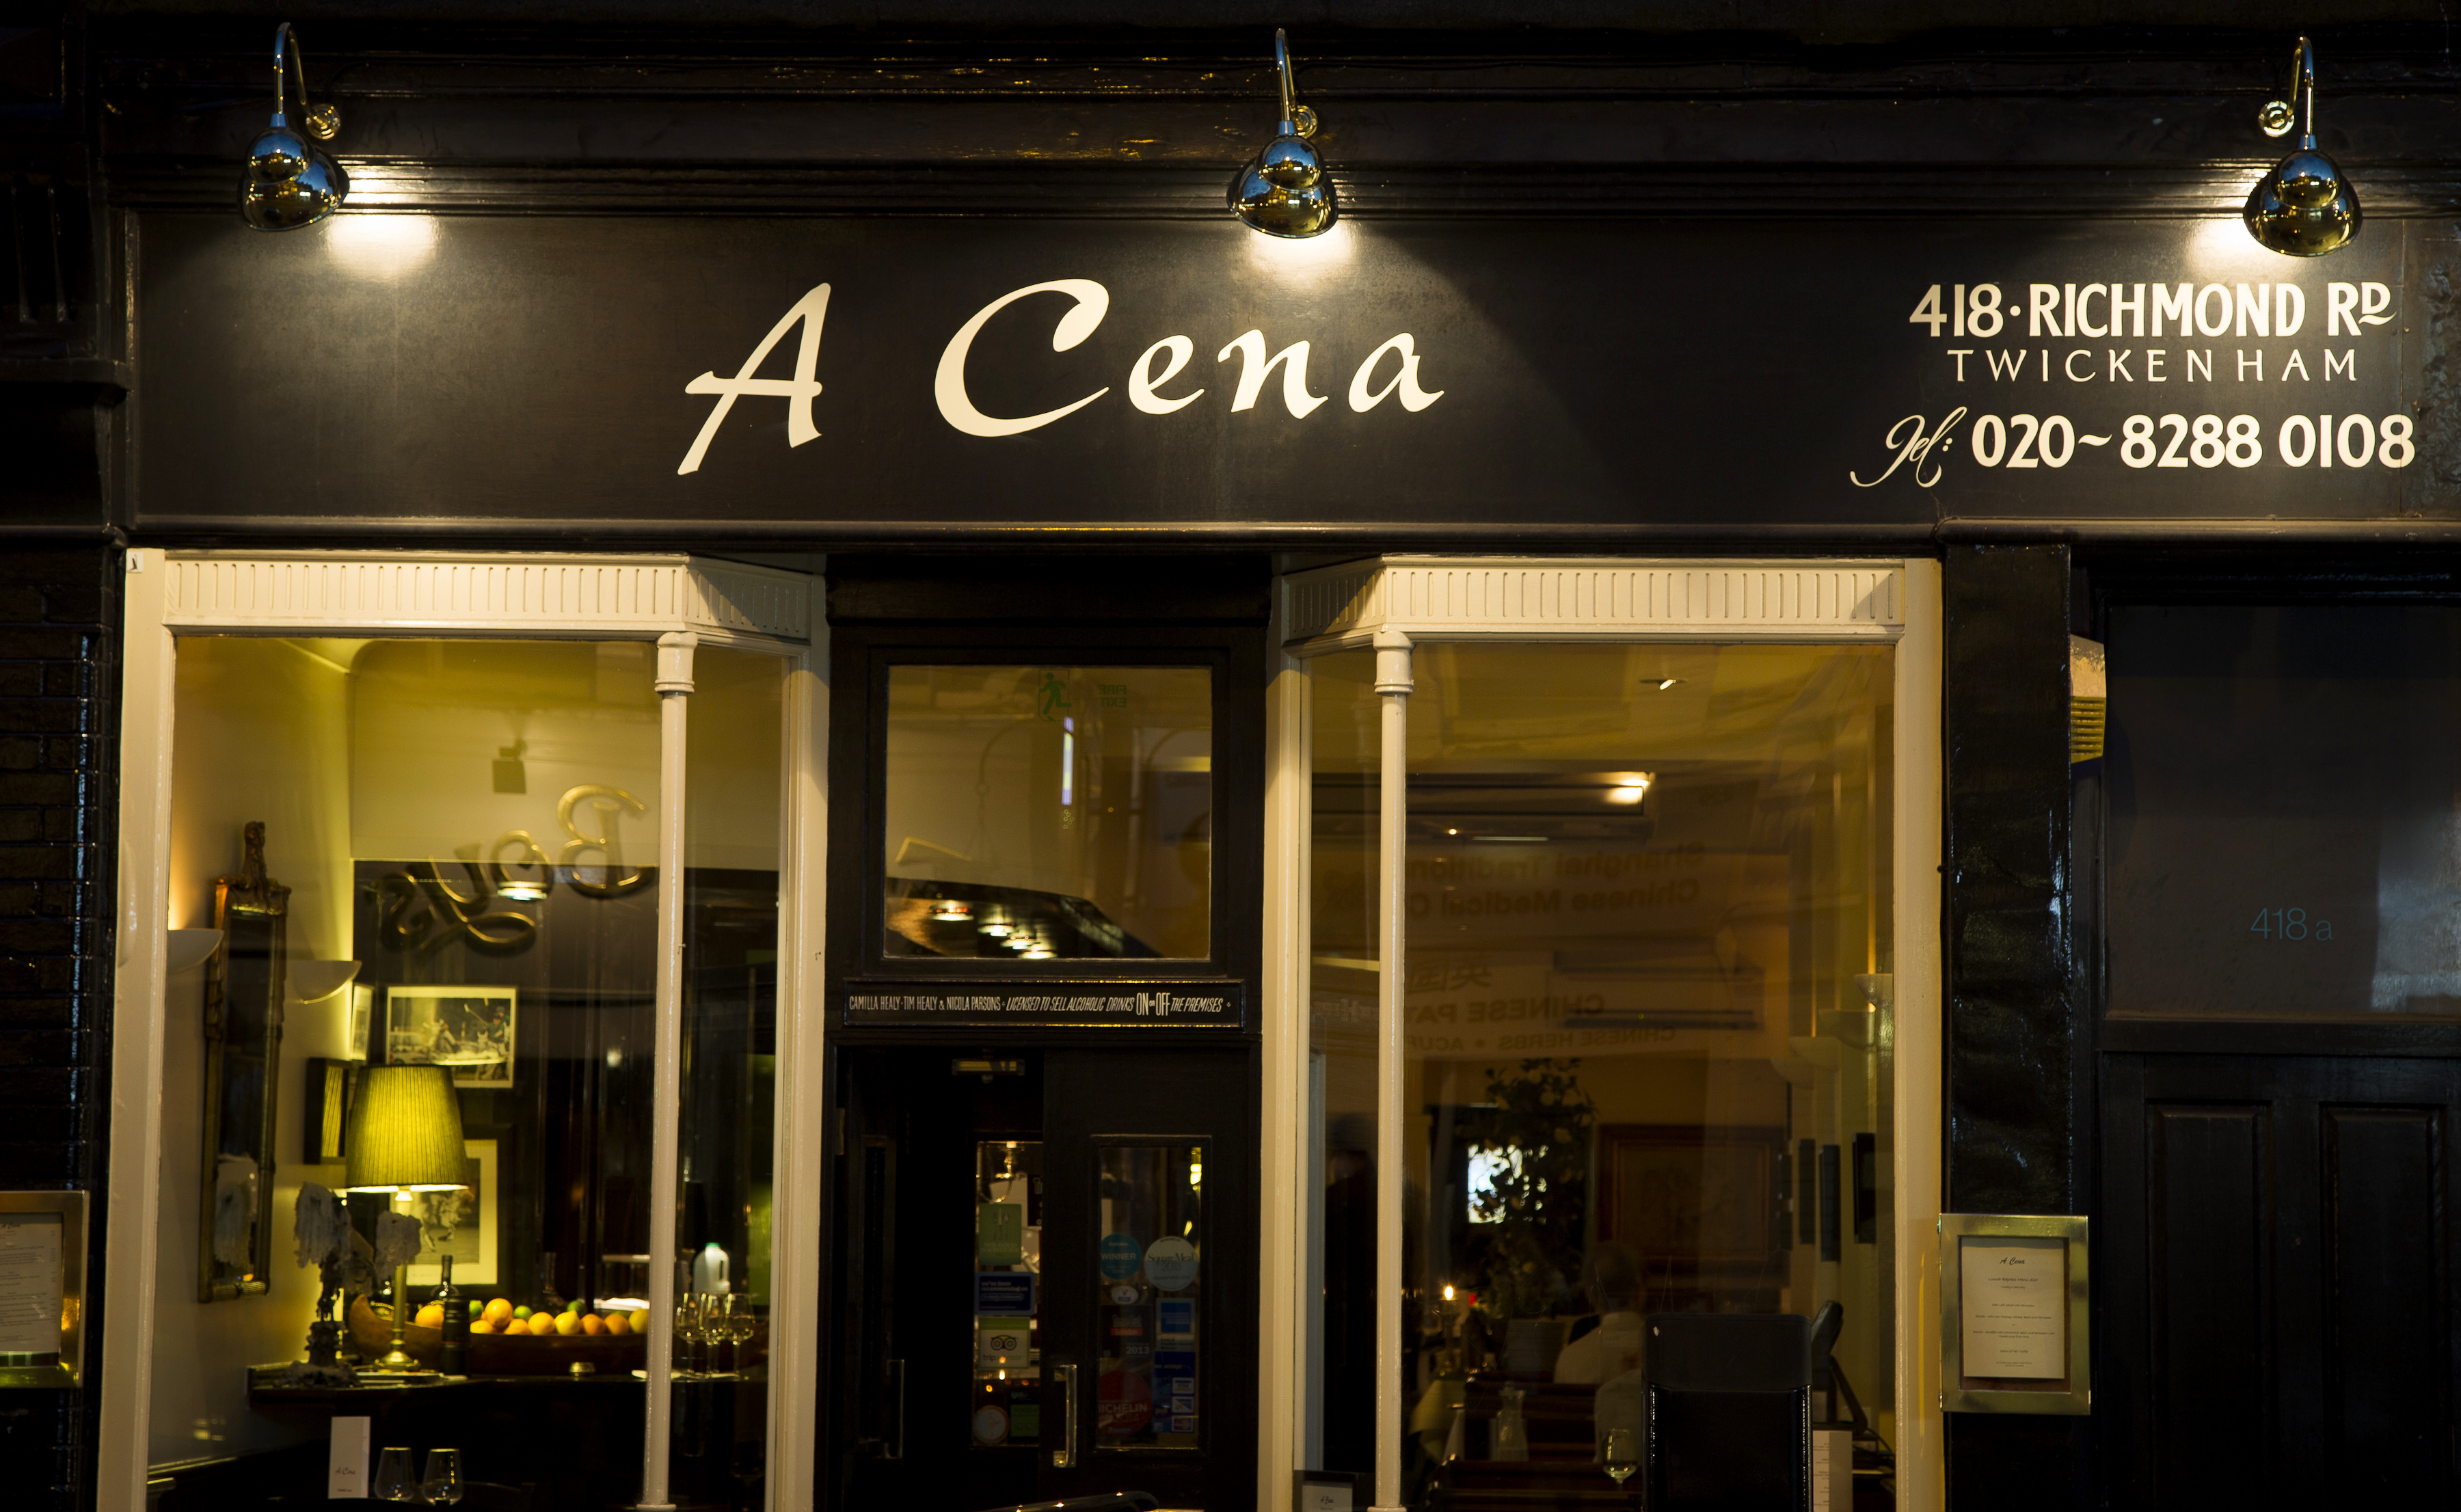 A Cena - Greater London